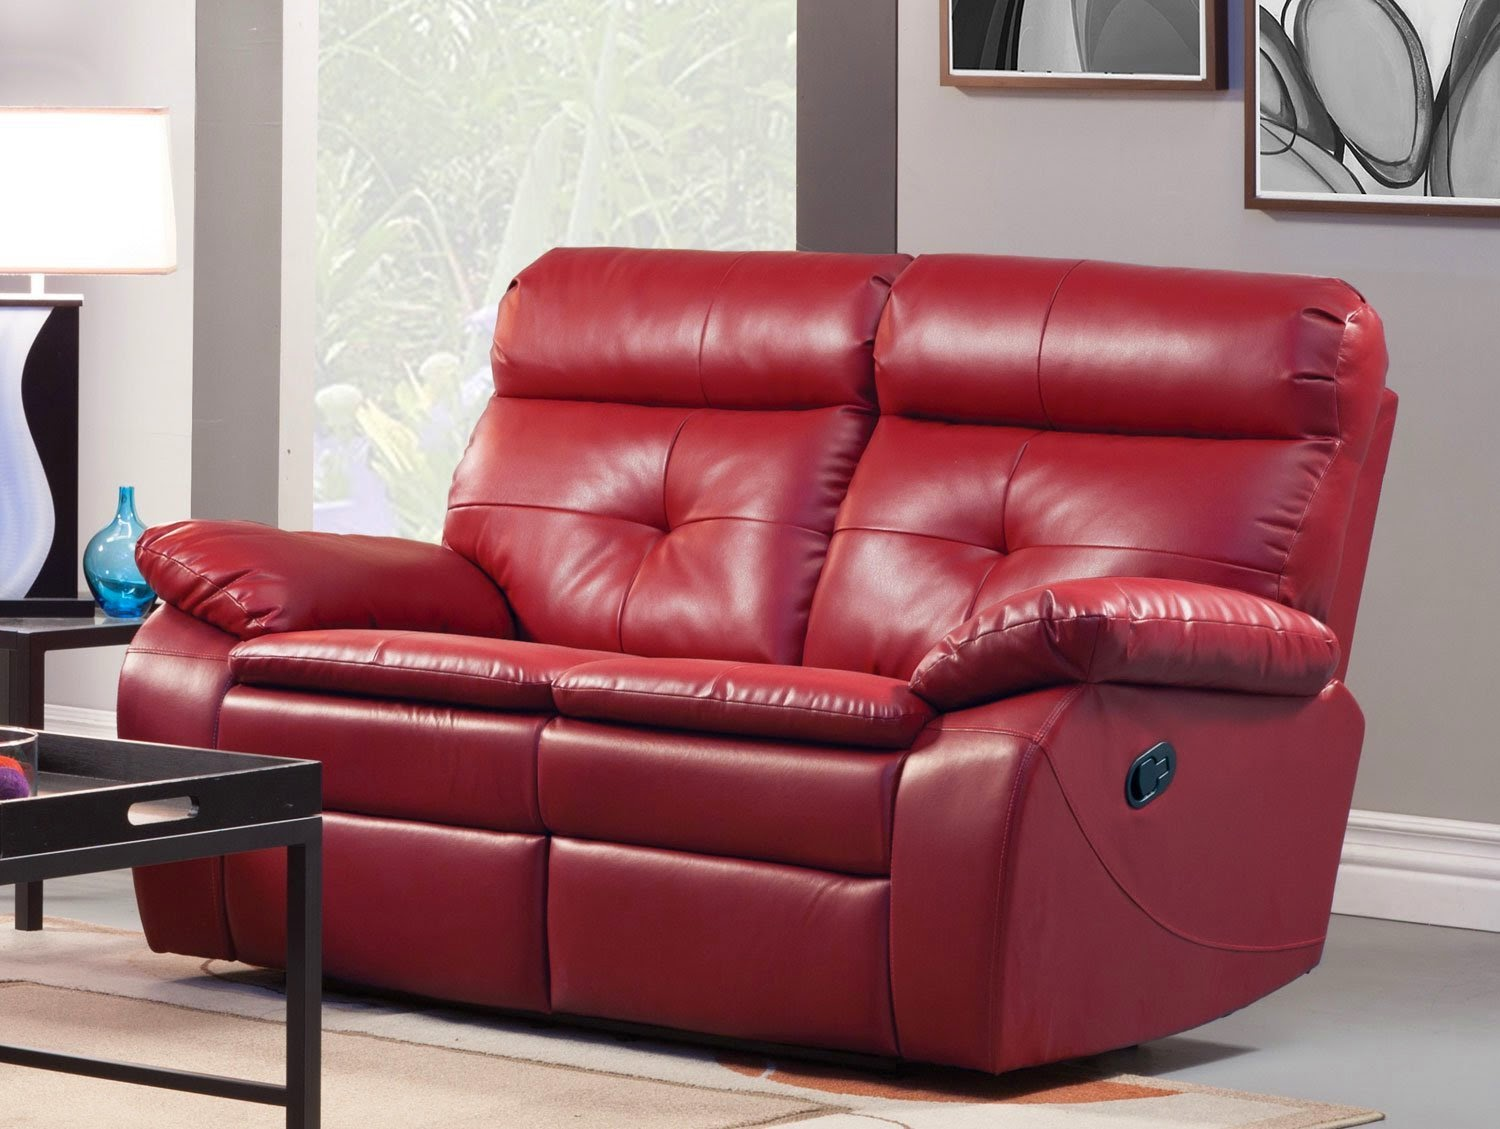 Cheap Leather Recliner Sofa Functionalities Net ~ Recliner Leather Sofa Deals